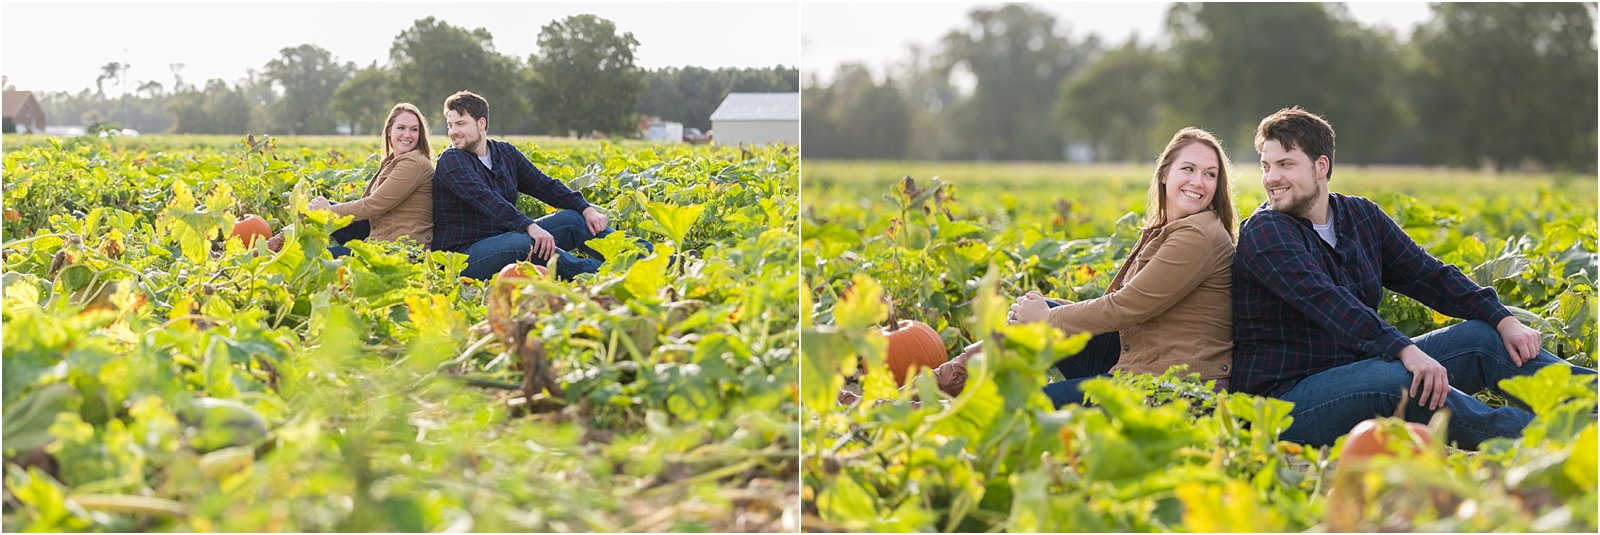 jessica_ryan_photography_pumpkin_patch_engagement_portraits_fall_october_engagements_virginia_beach_chesapeake_0278